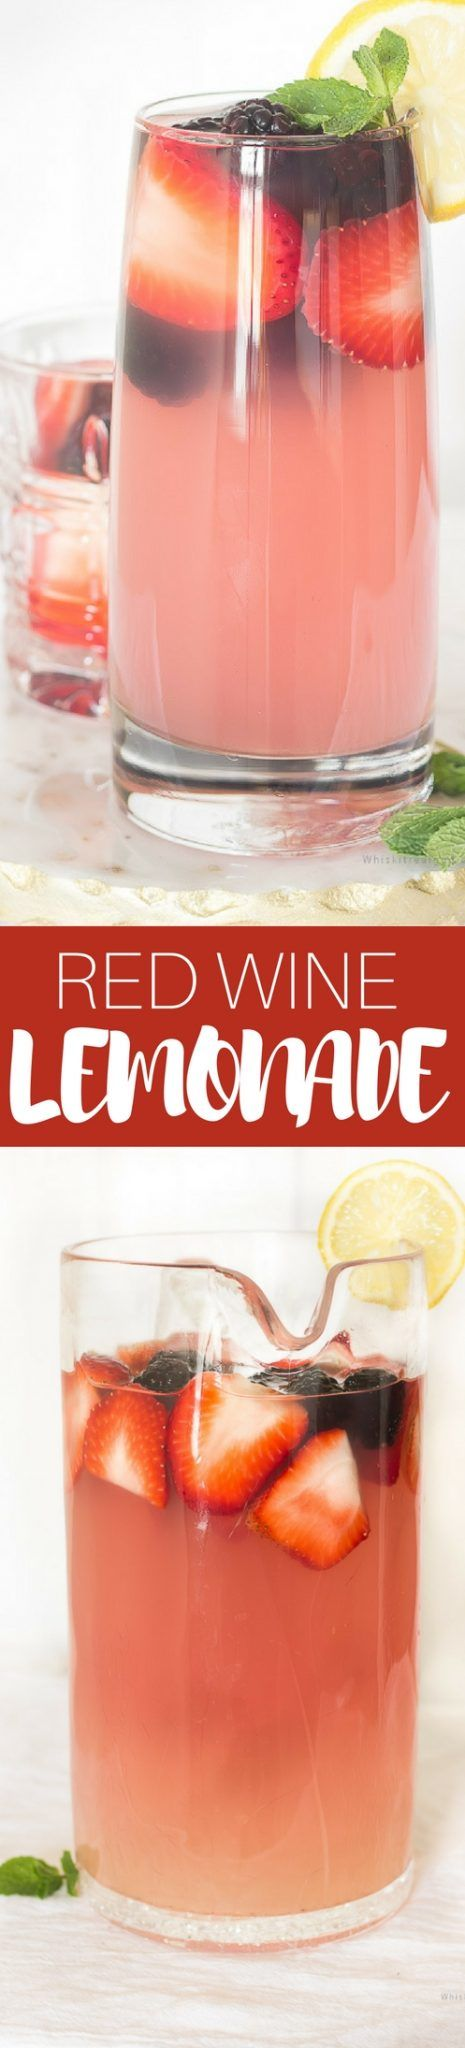 An easy recipe for red wine and berries lemonade. Red wine and fresh berries lemonade is a perfect refreshing cocktail perfect for gatherings.